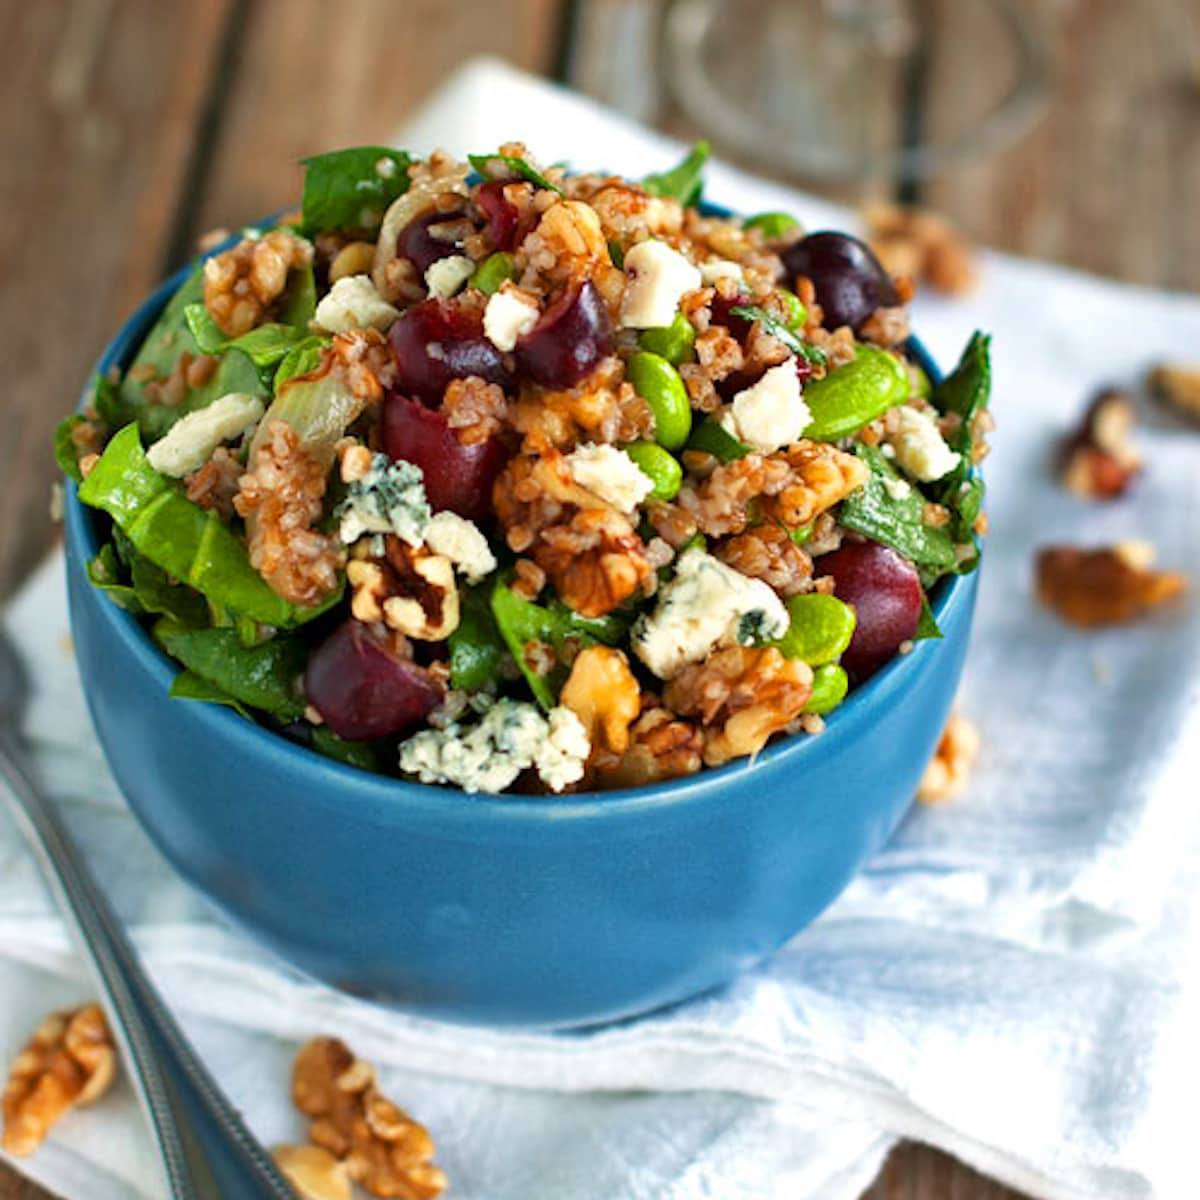 This honey walnut power salad is completely loaded with good stuff: edamame, grapes, blue cheese, bulgur, walnuts, spinach, and honey. | pinchofyum.com